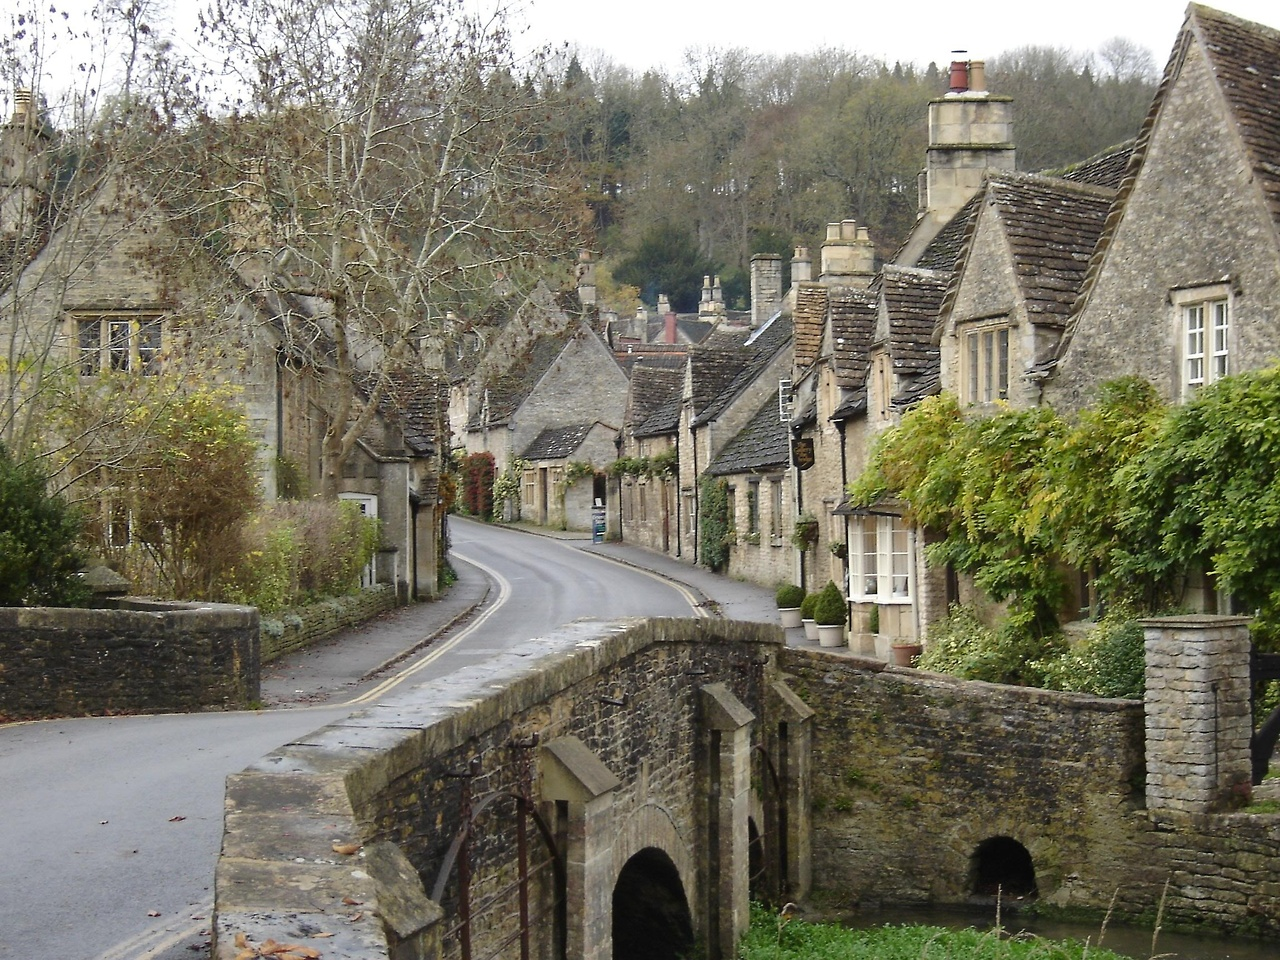 The Village of Bibury, England, с 1086 2